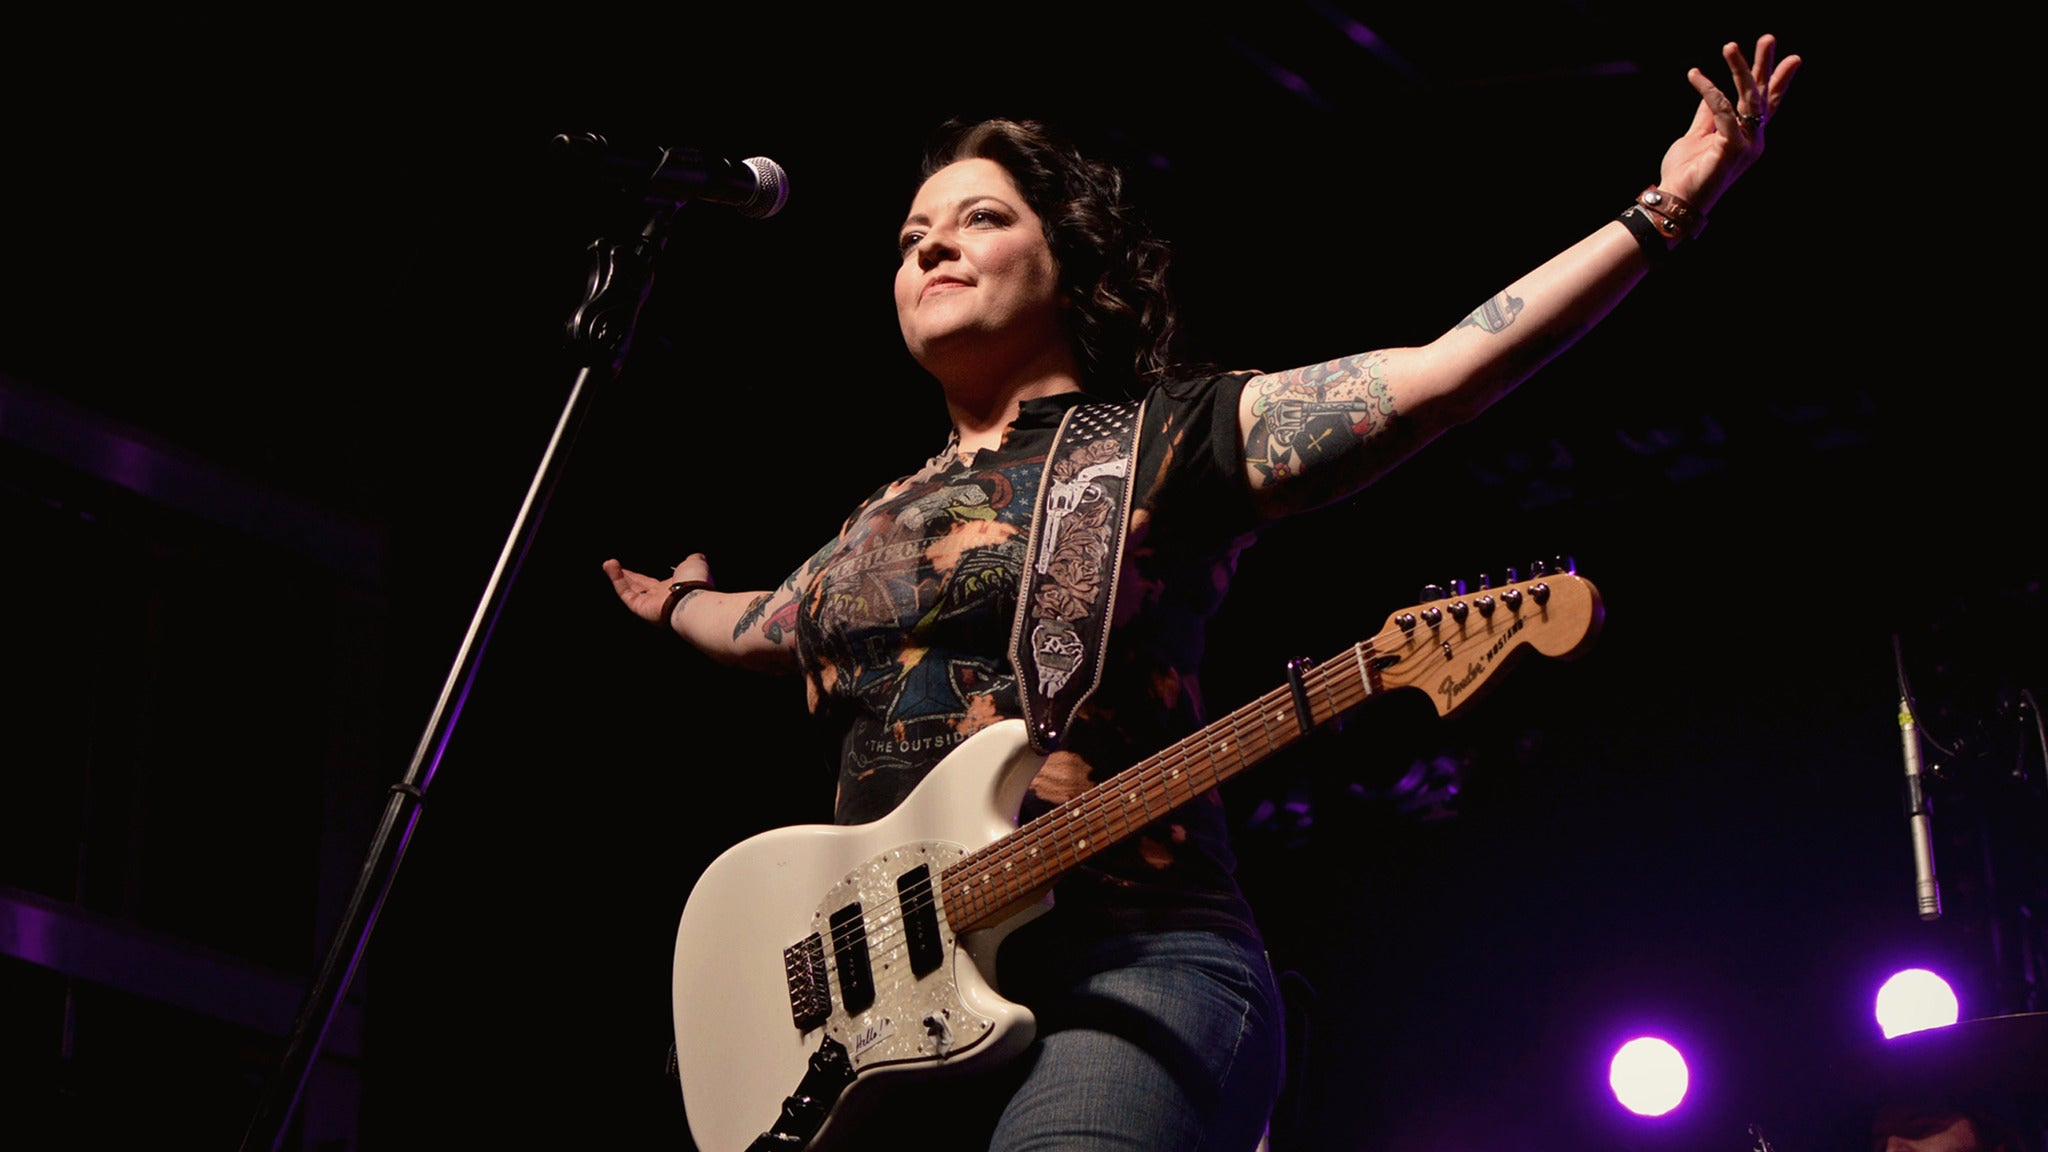 Ashley McBryde at 40 Watt Club